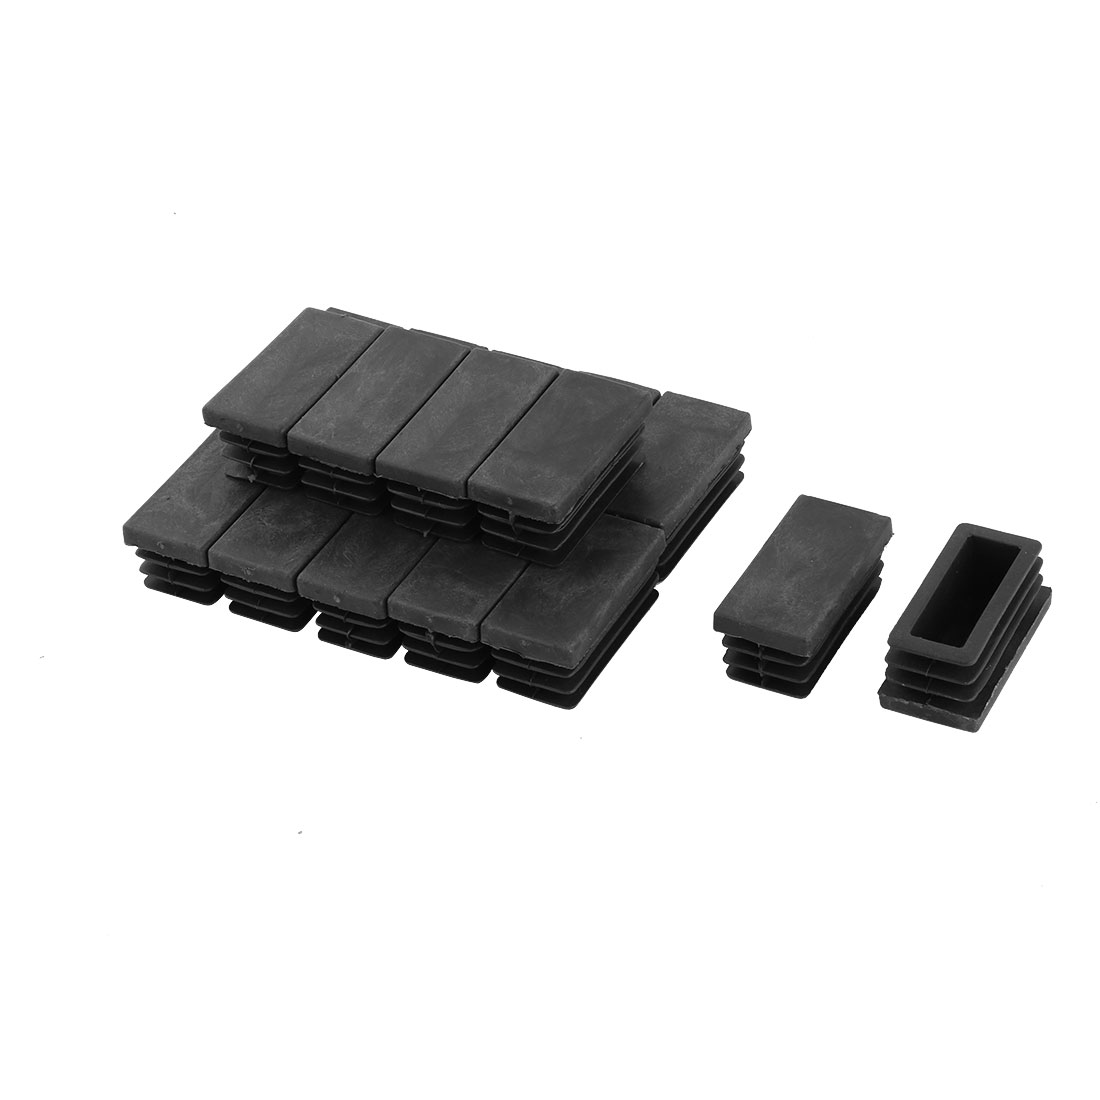 20 Pieces Black Plastic Rectangular Blanking End Caps Tubing Pipe Inserts 20mm x 40mm